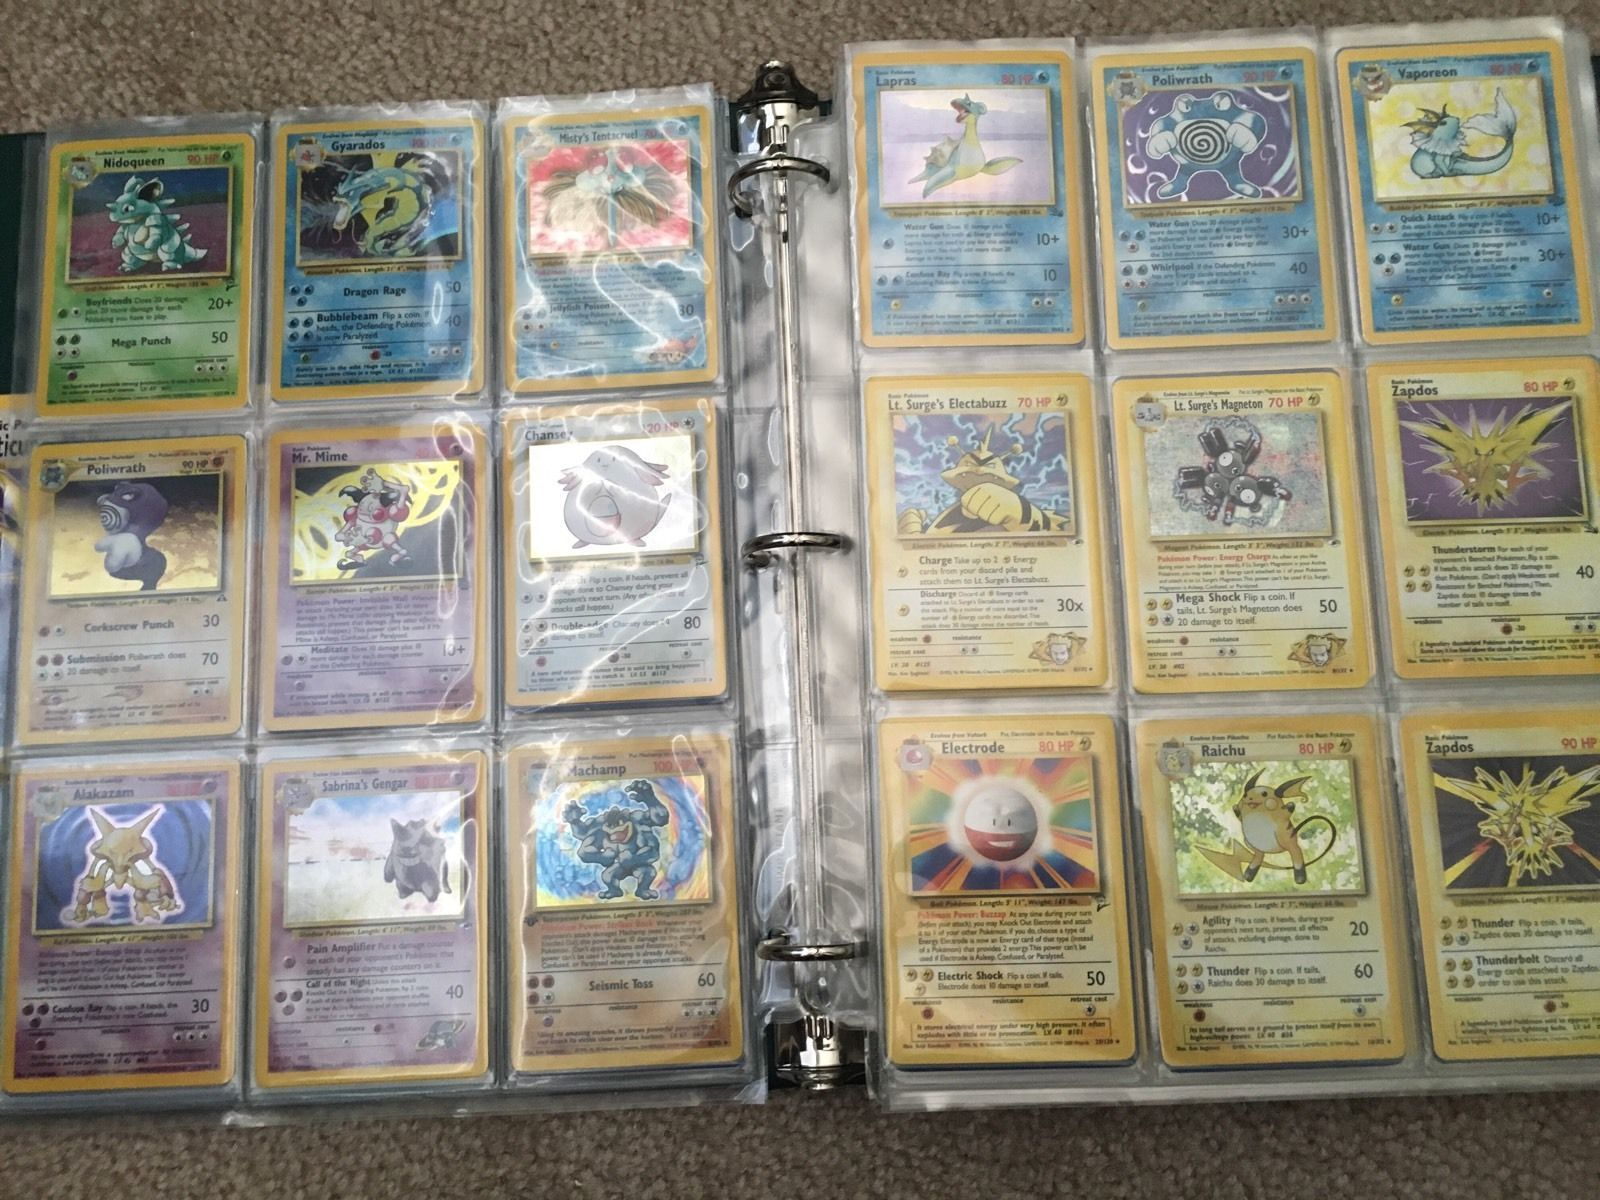 50x HUGE ALL ORIGINAL WOTC Pokemon Card LOT BULK COMMON/UNC + HOLO and 3 RARE